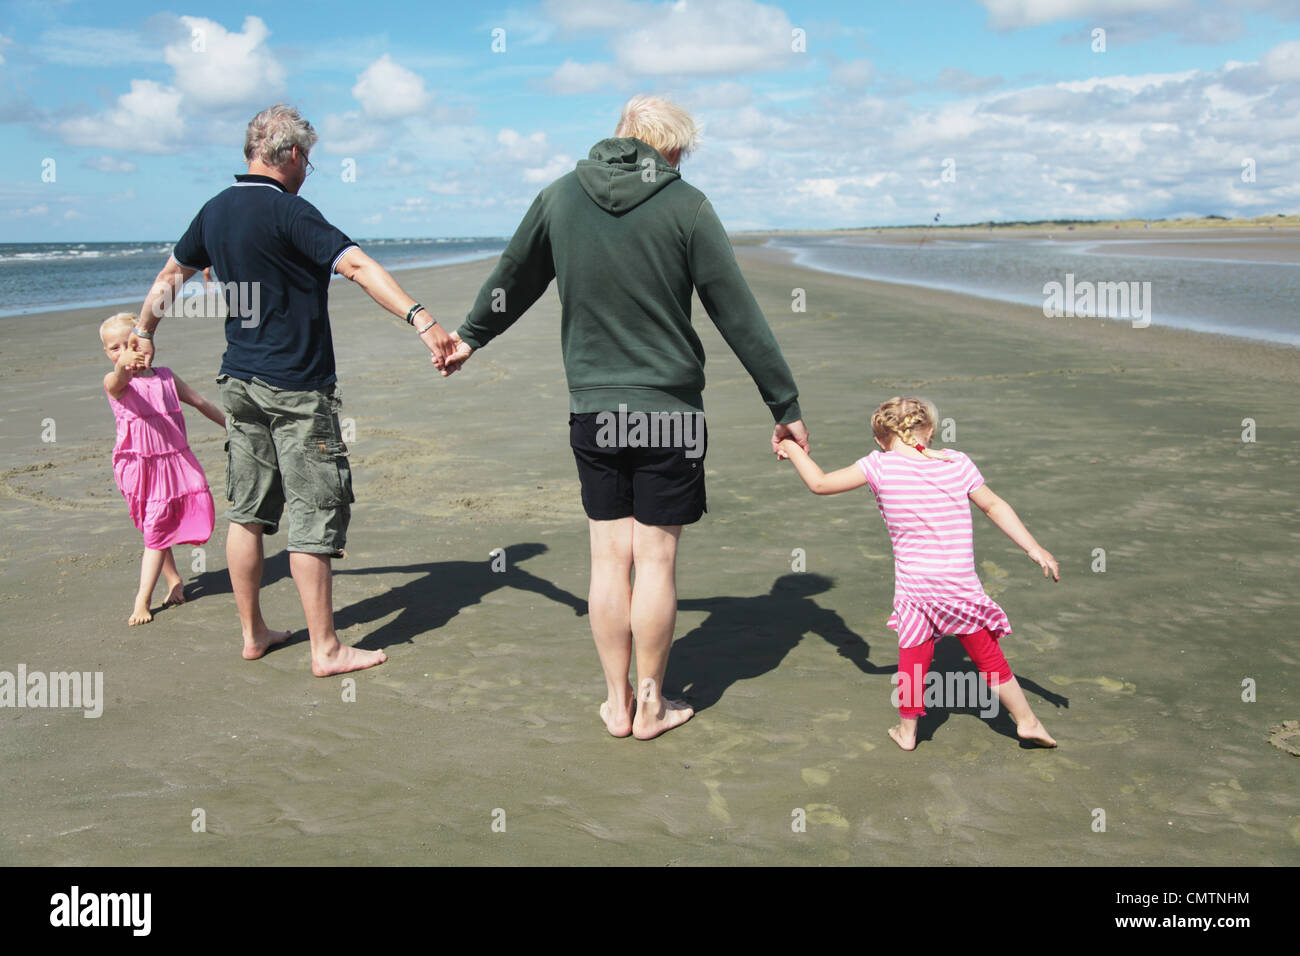 Rear view of parents and daughters (4-7) holding hands on beach - Stock Image